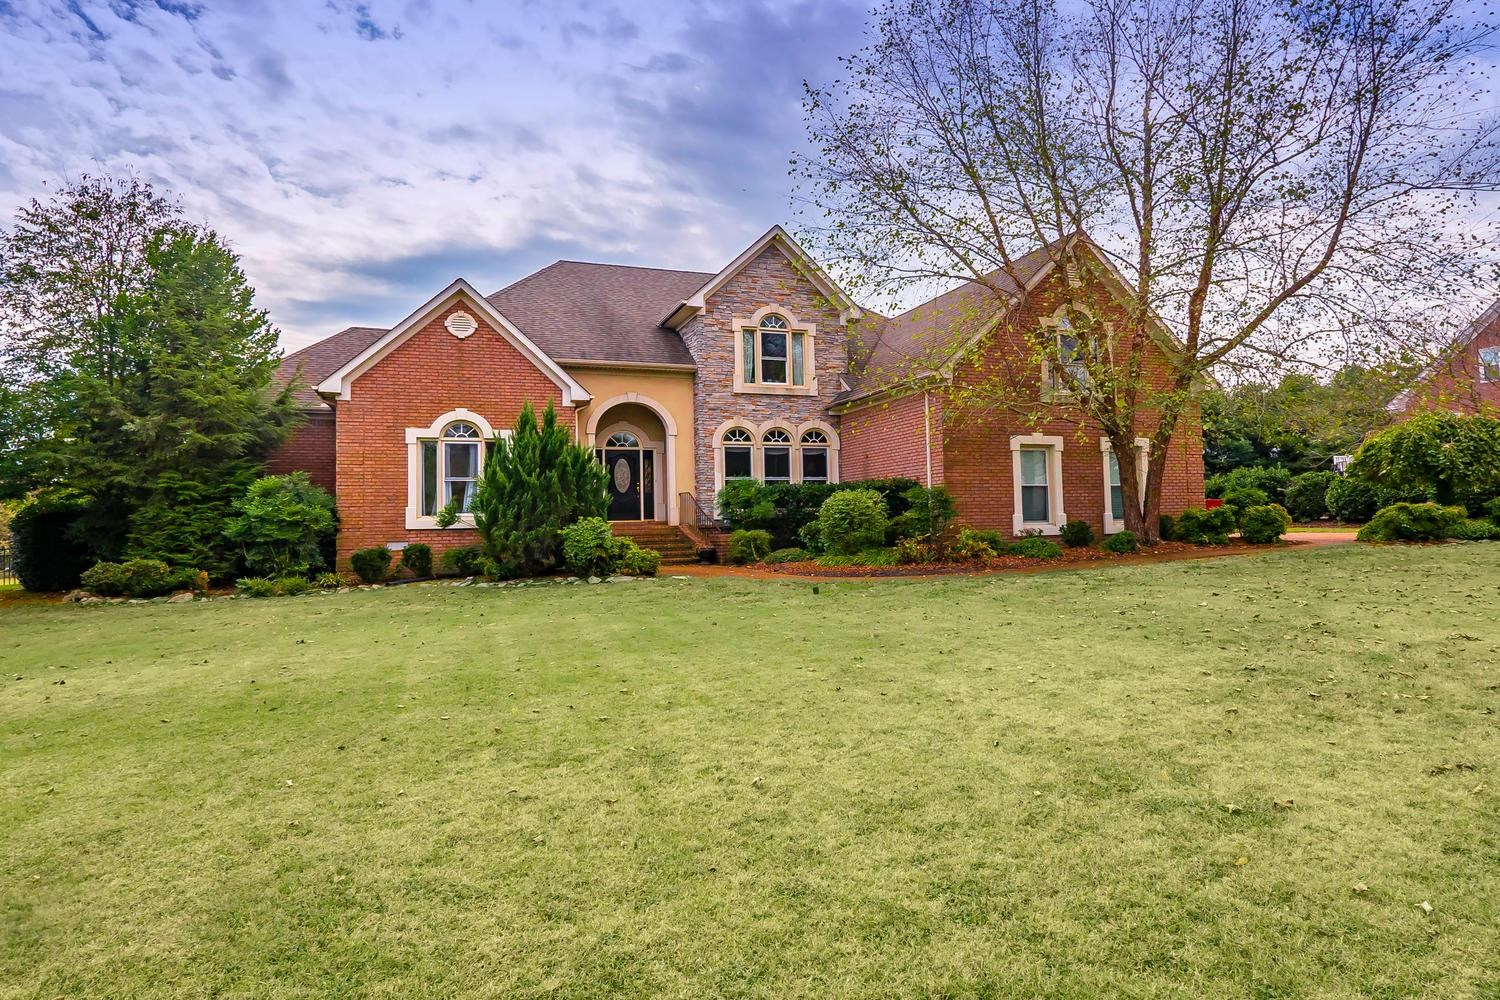 Retirement / in town Home for Sale in Franklin, TN